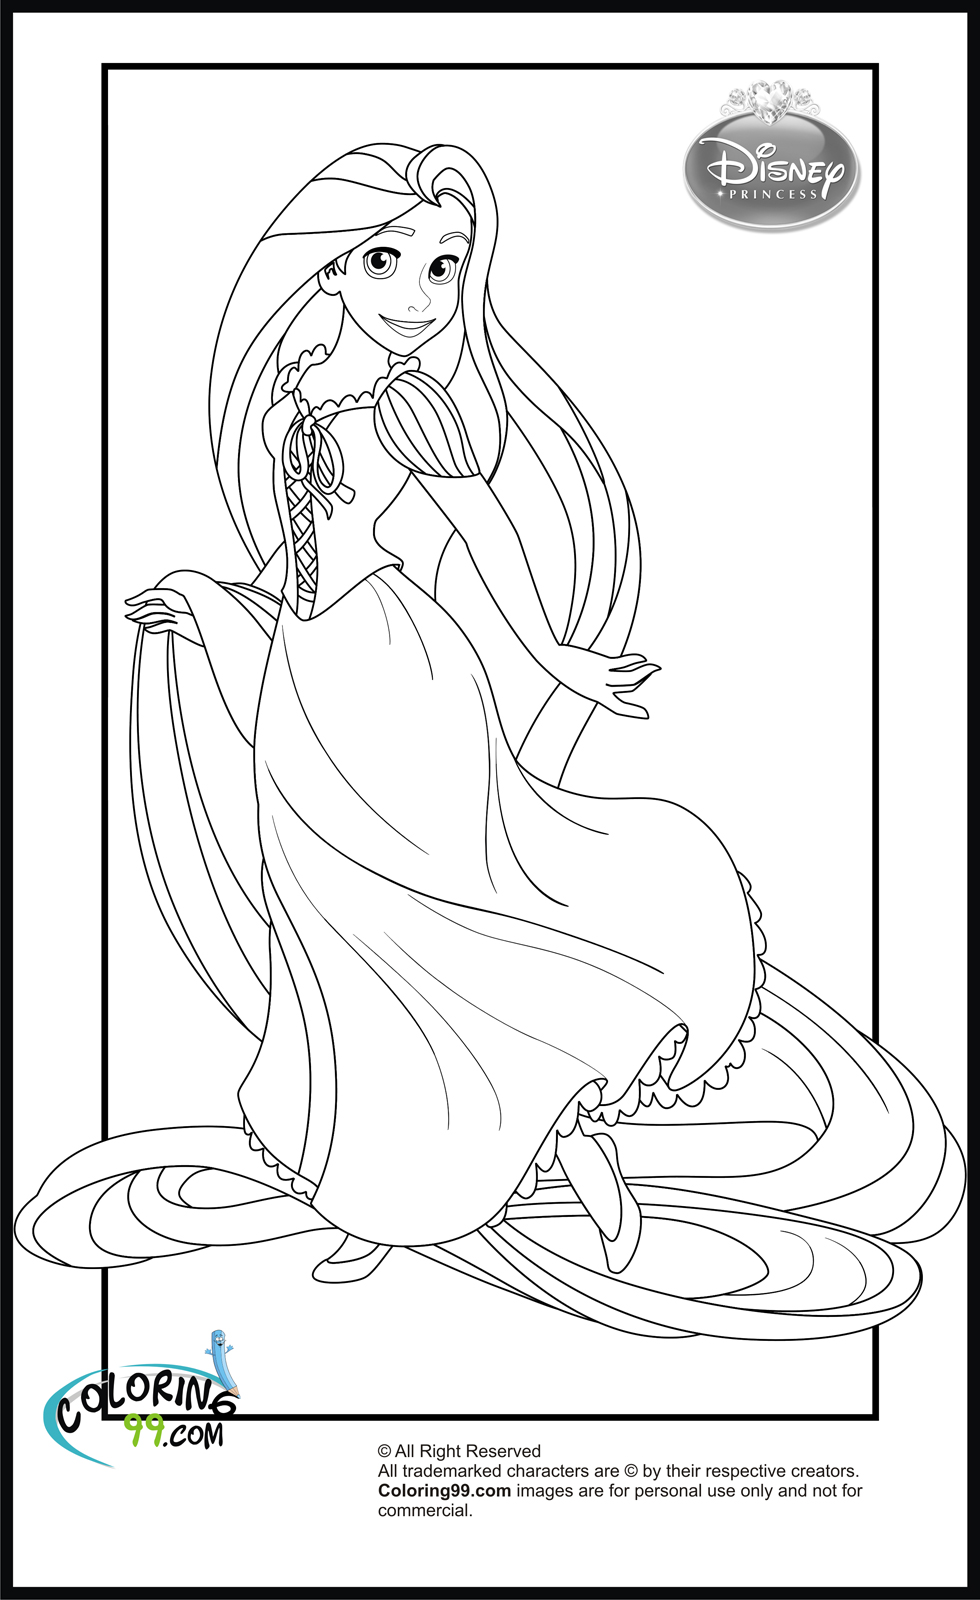 May 2013 Team Colors Princess Coloring Pages Baby Rapunzel Printable